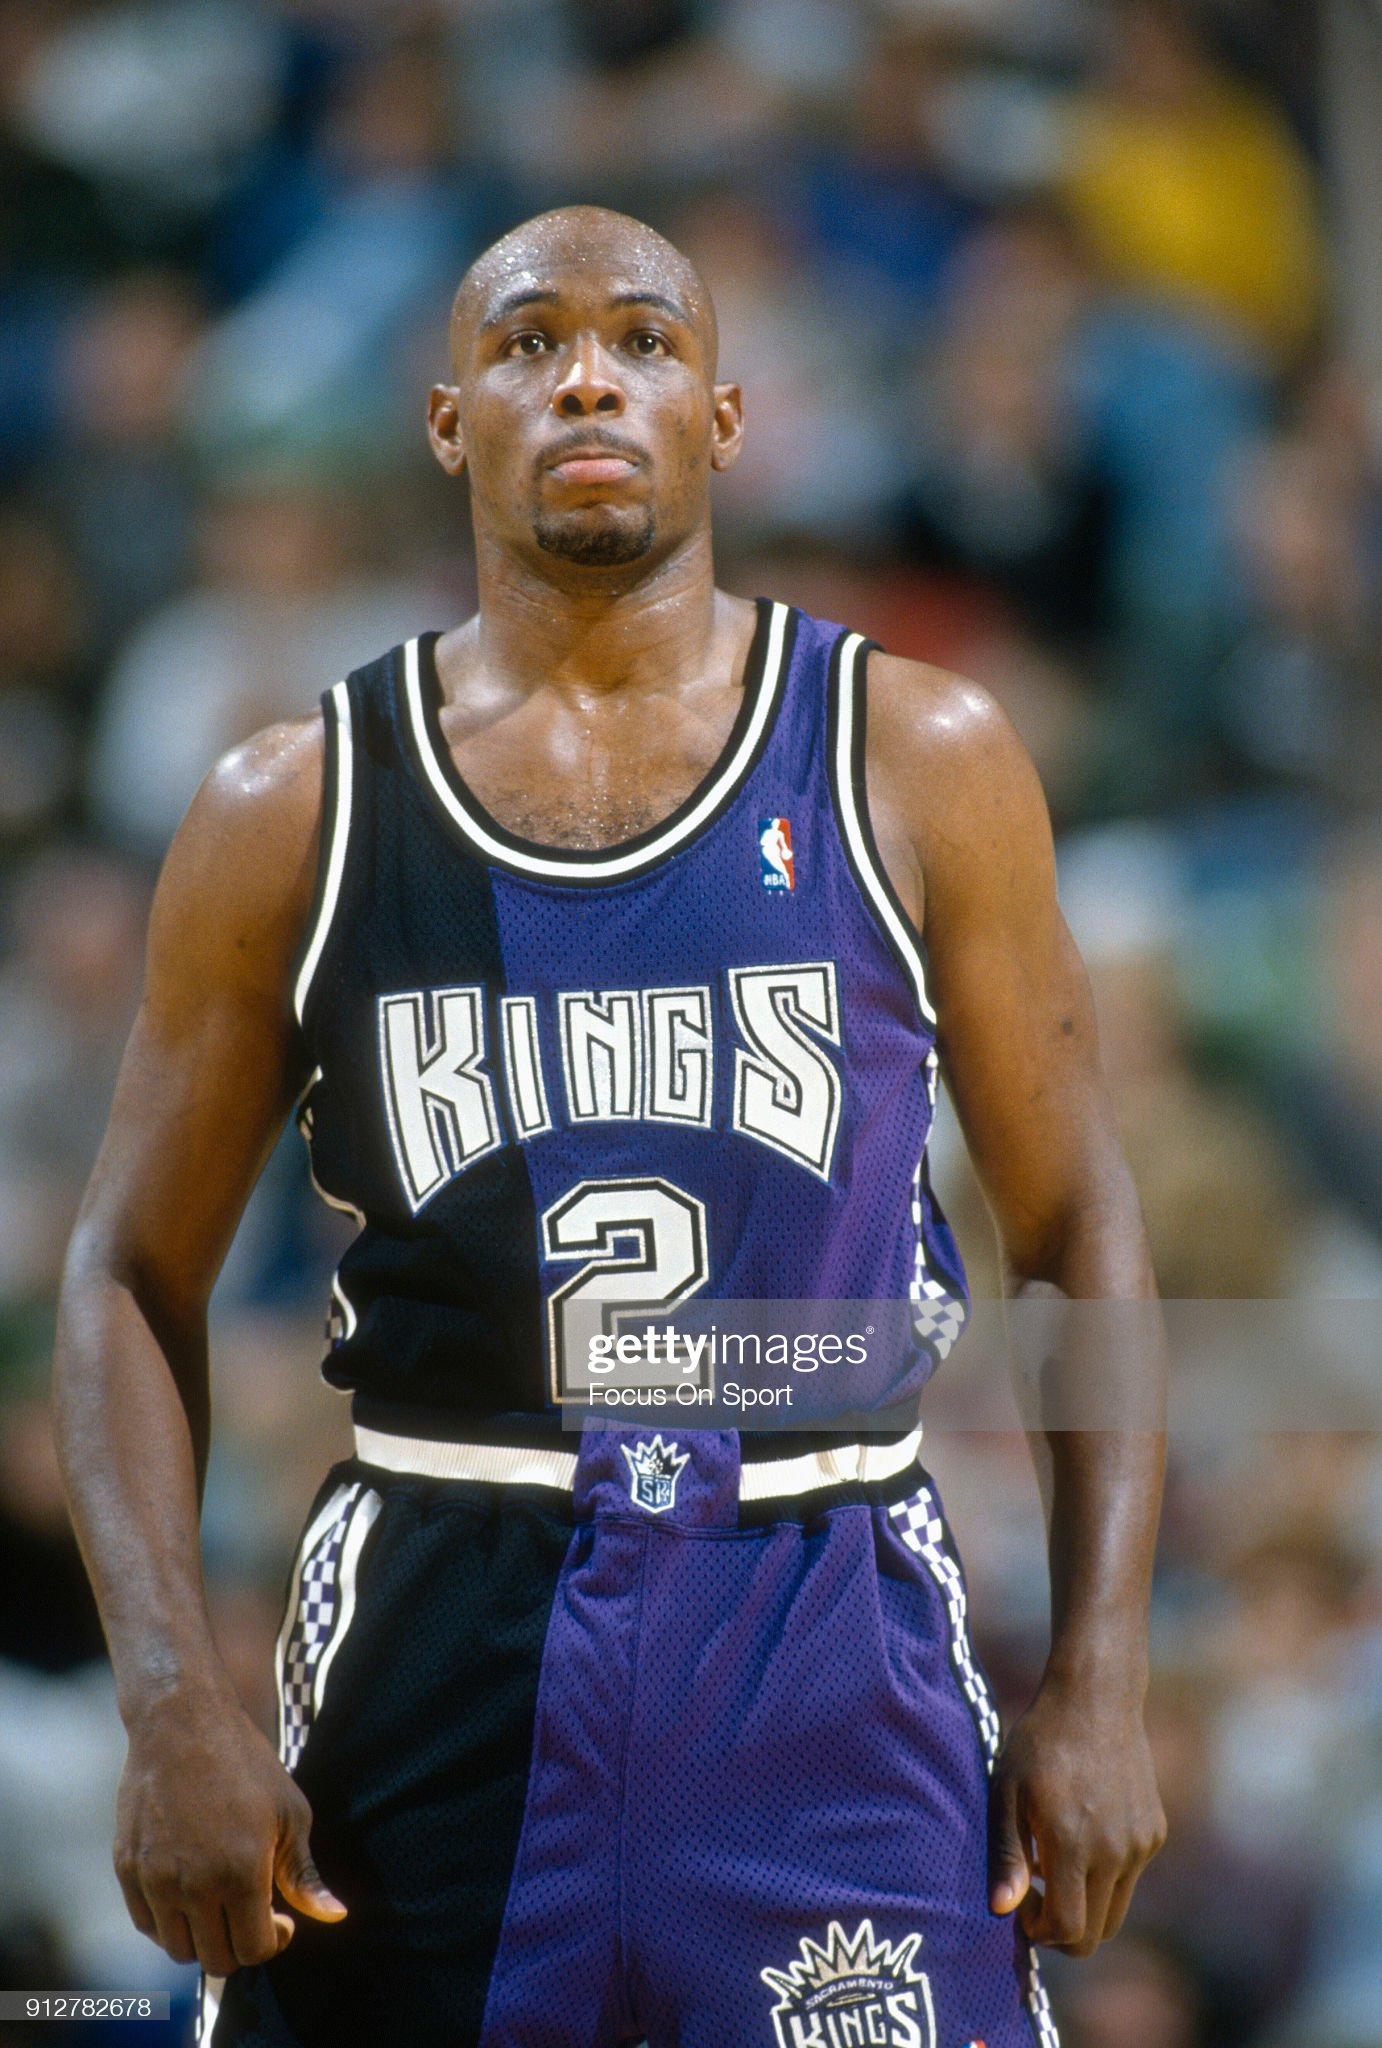 67deab1084d Membership update: The Sacramento Kings' split black/purple uniform with  checkerboard ...